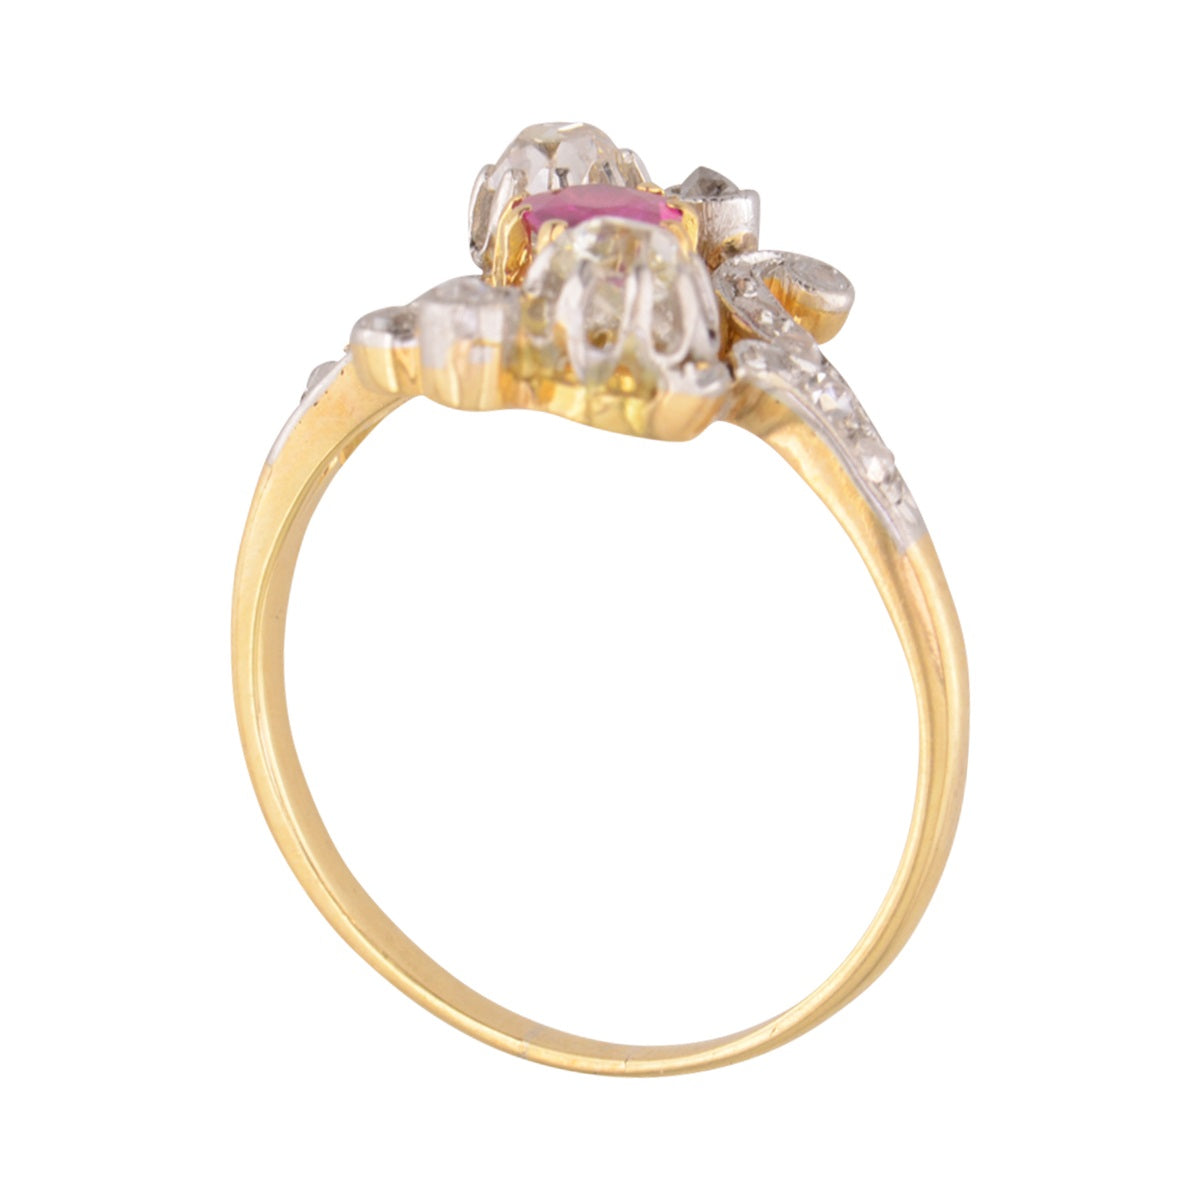 Authentic Edwardian Pink Sapphire and Diamond ring 'Ada.'